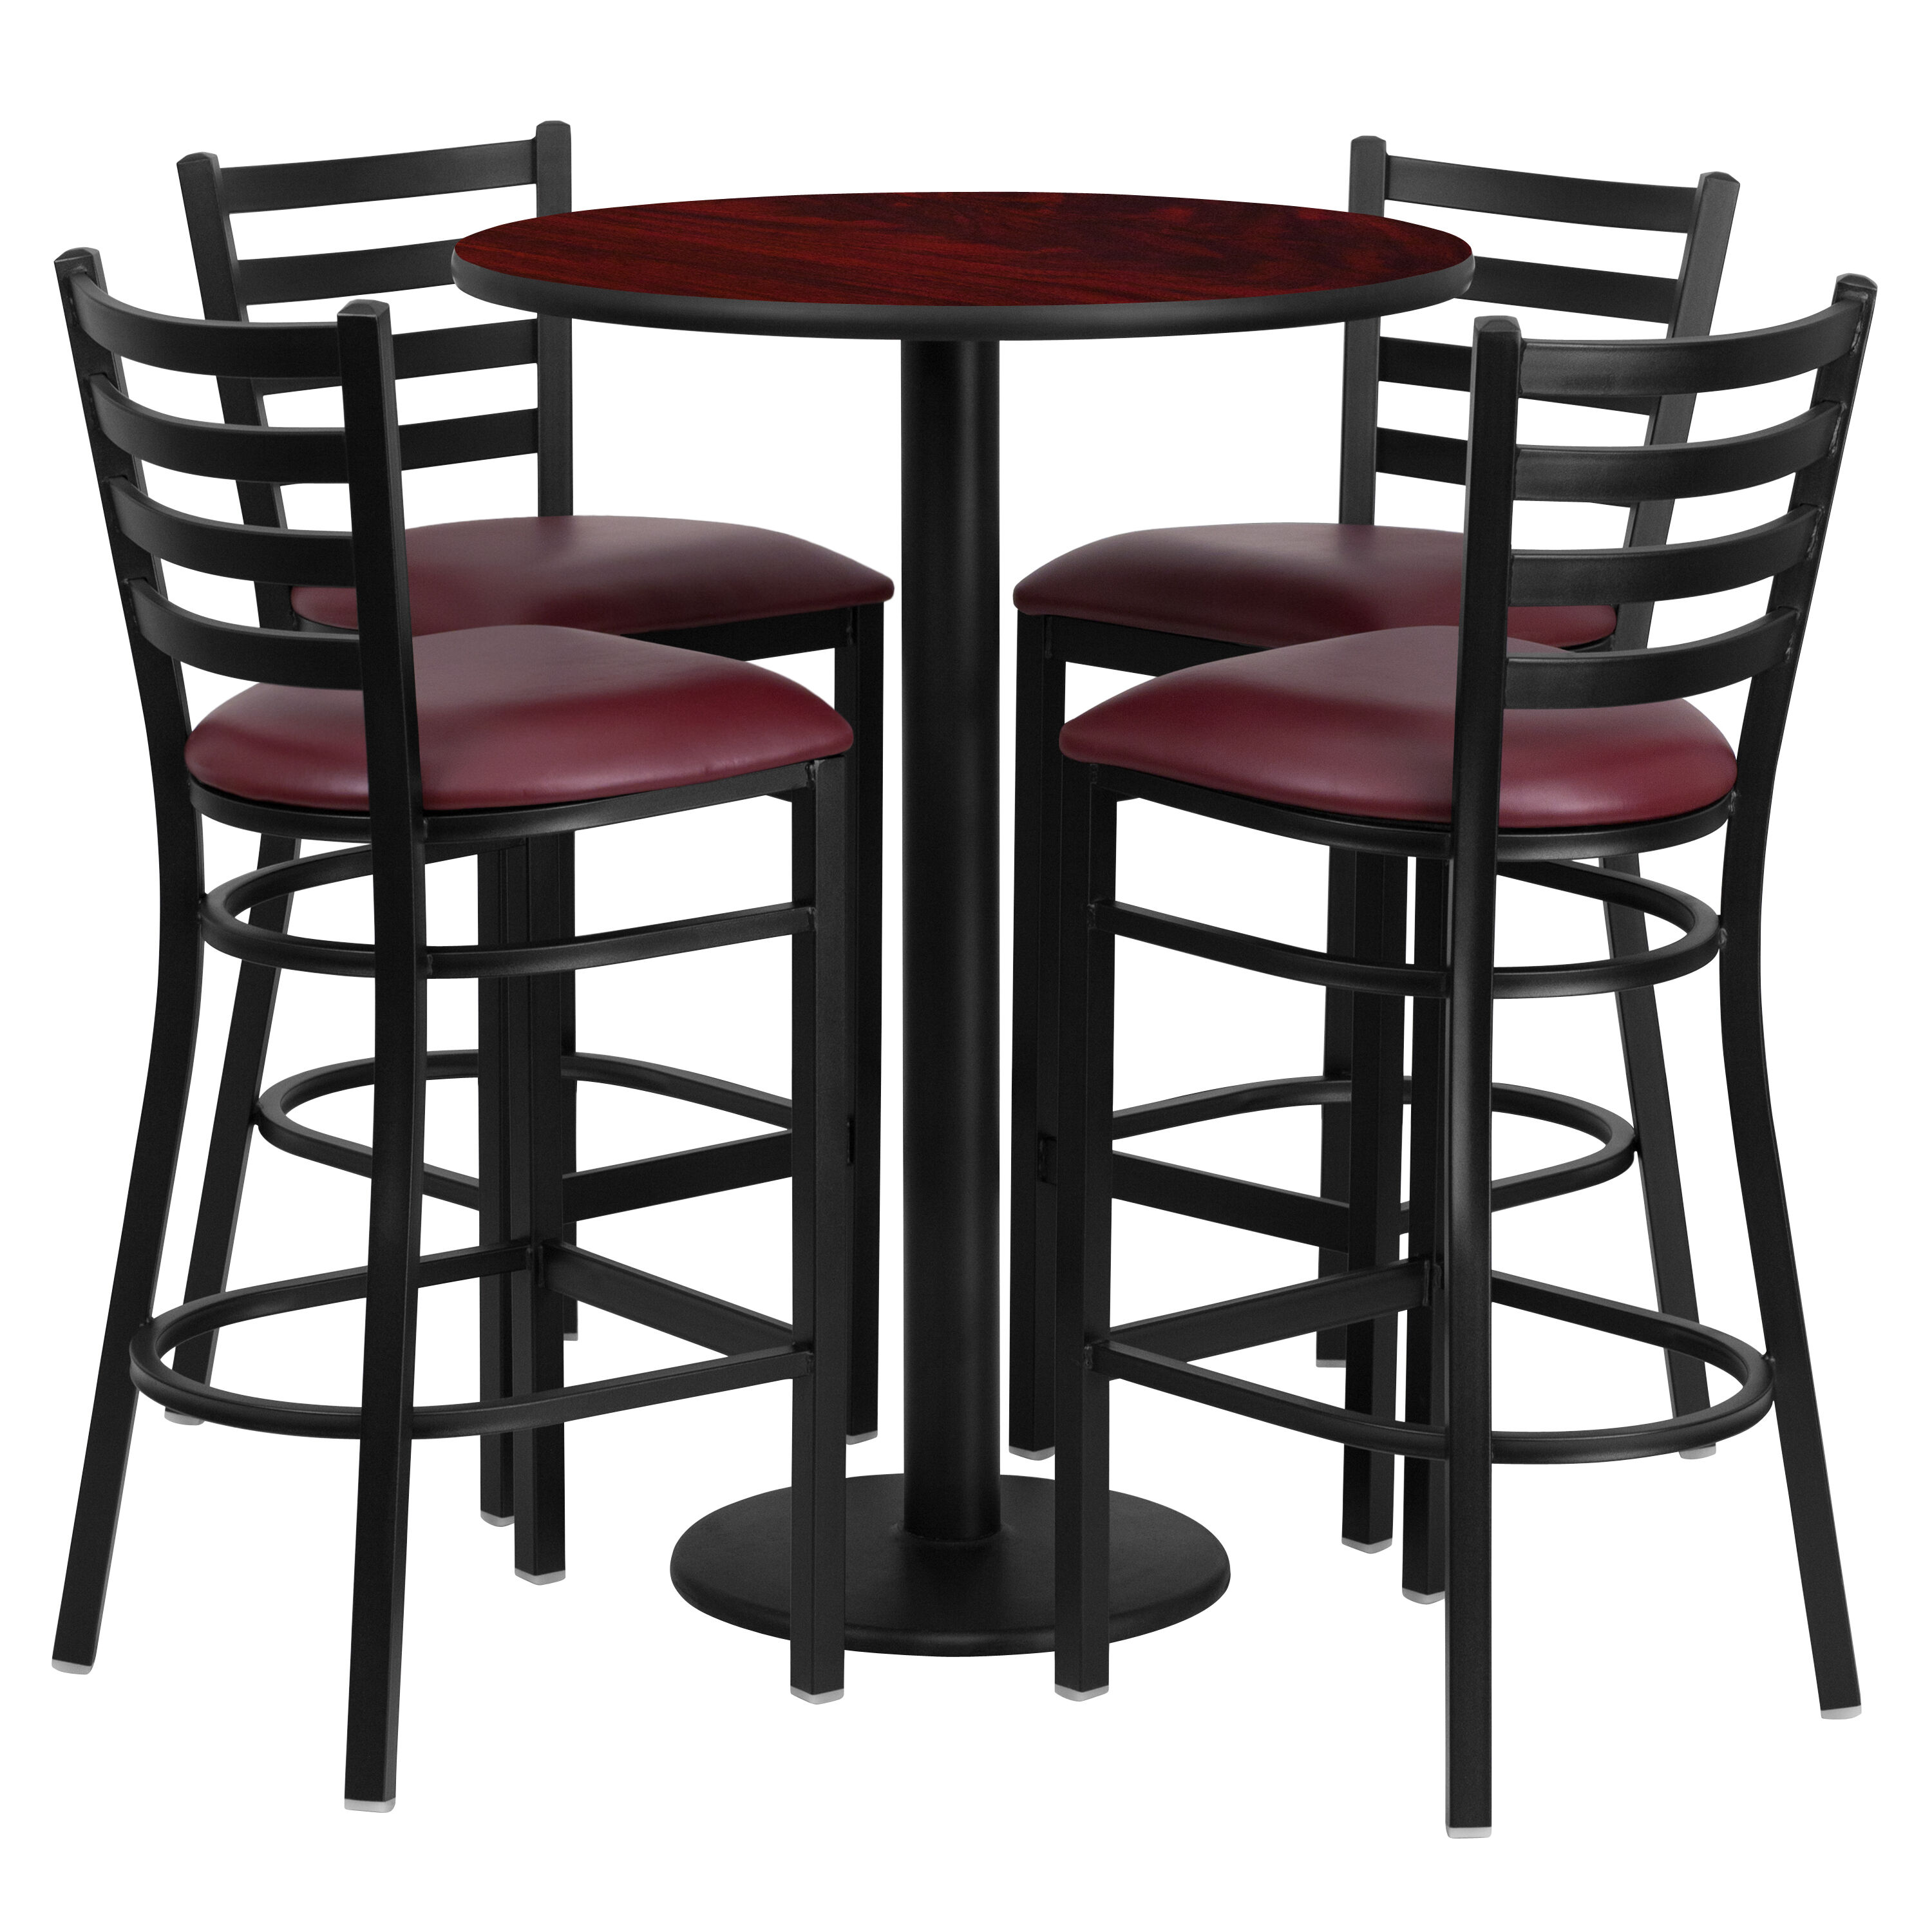 round table and chairs set posture seat singapore restaurantfurniture4less restaurant chair sets 30 mahogany laminate with base 4 ladder back metal barstools burgundy vinyl